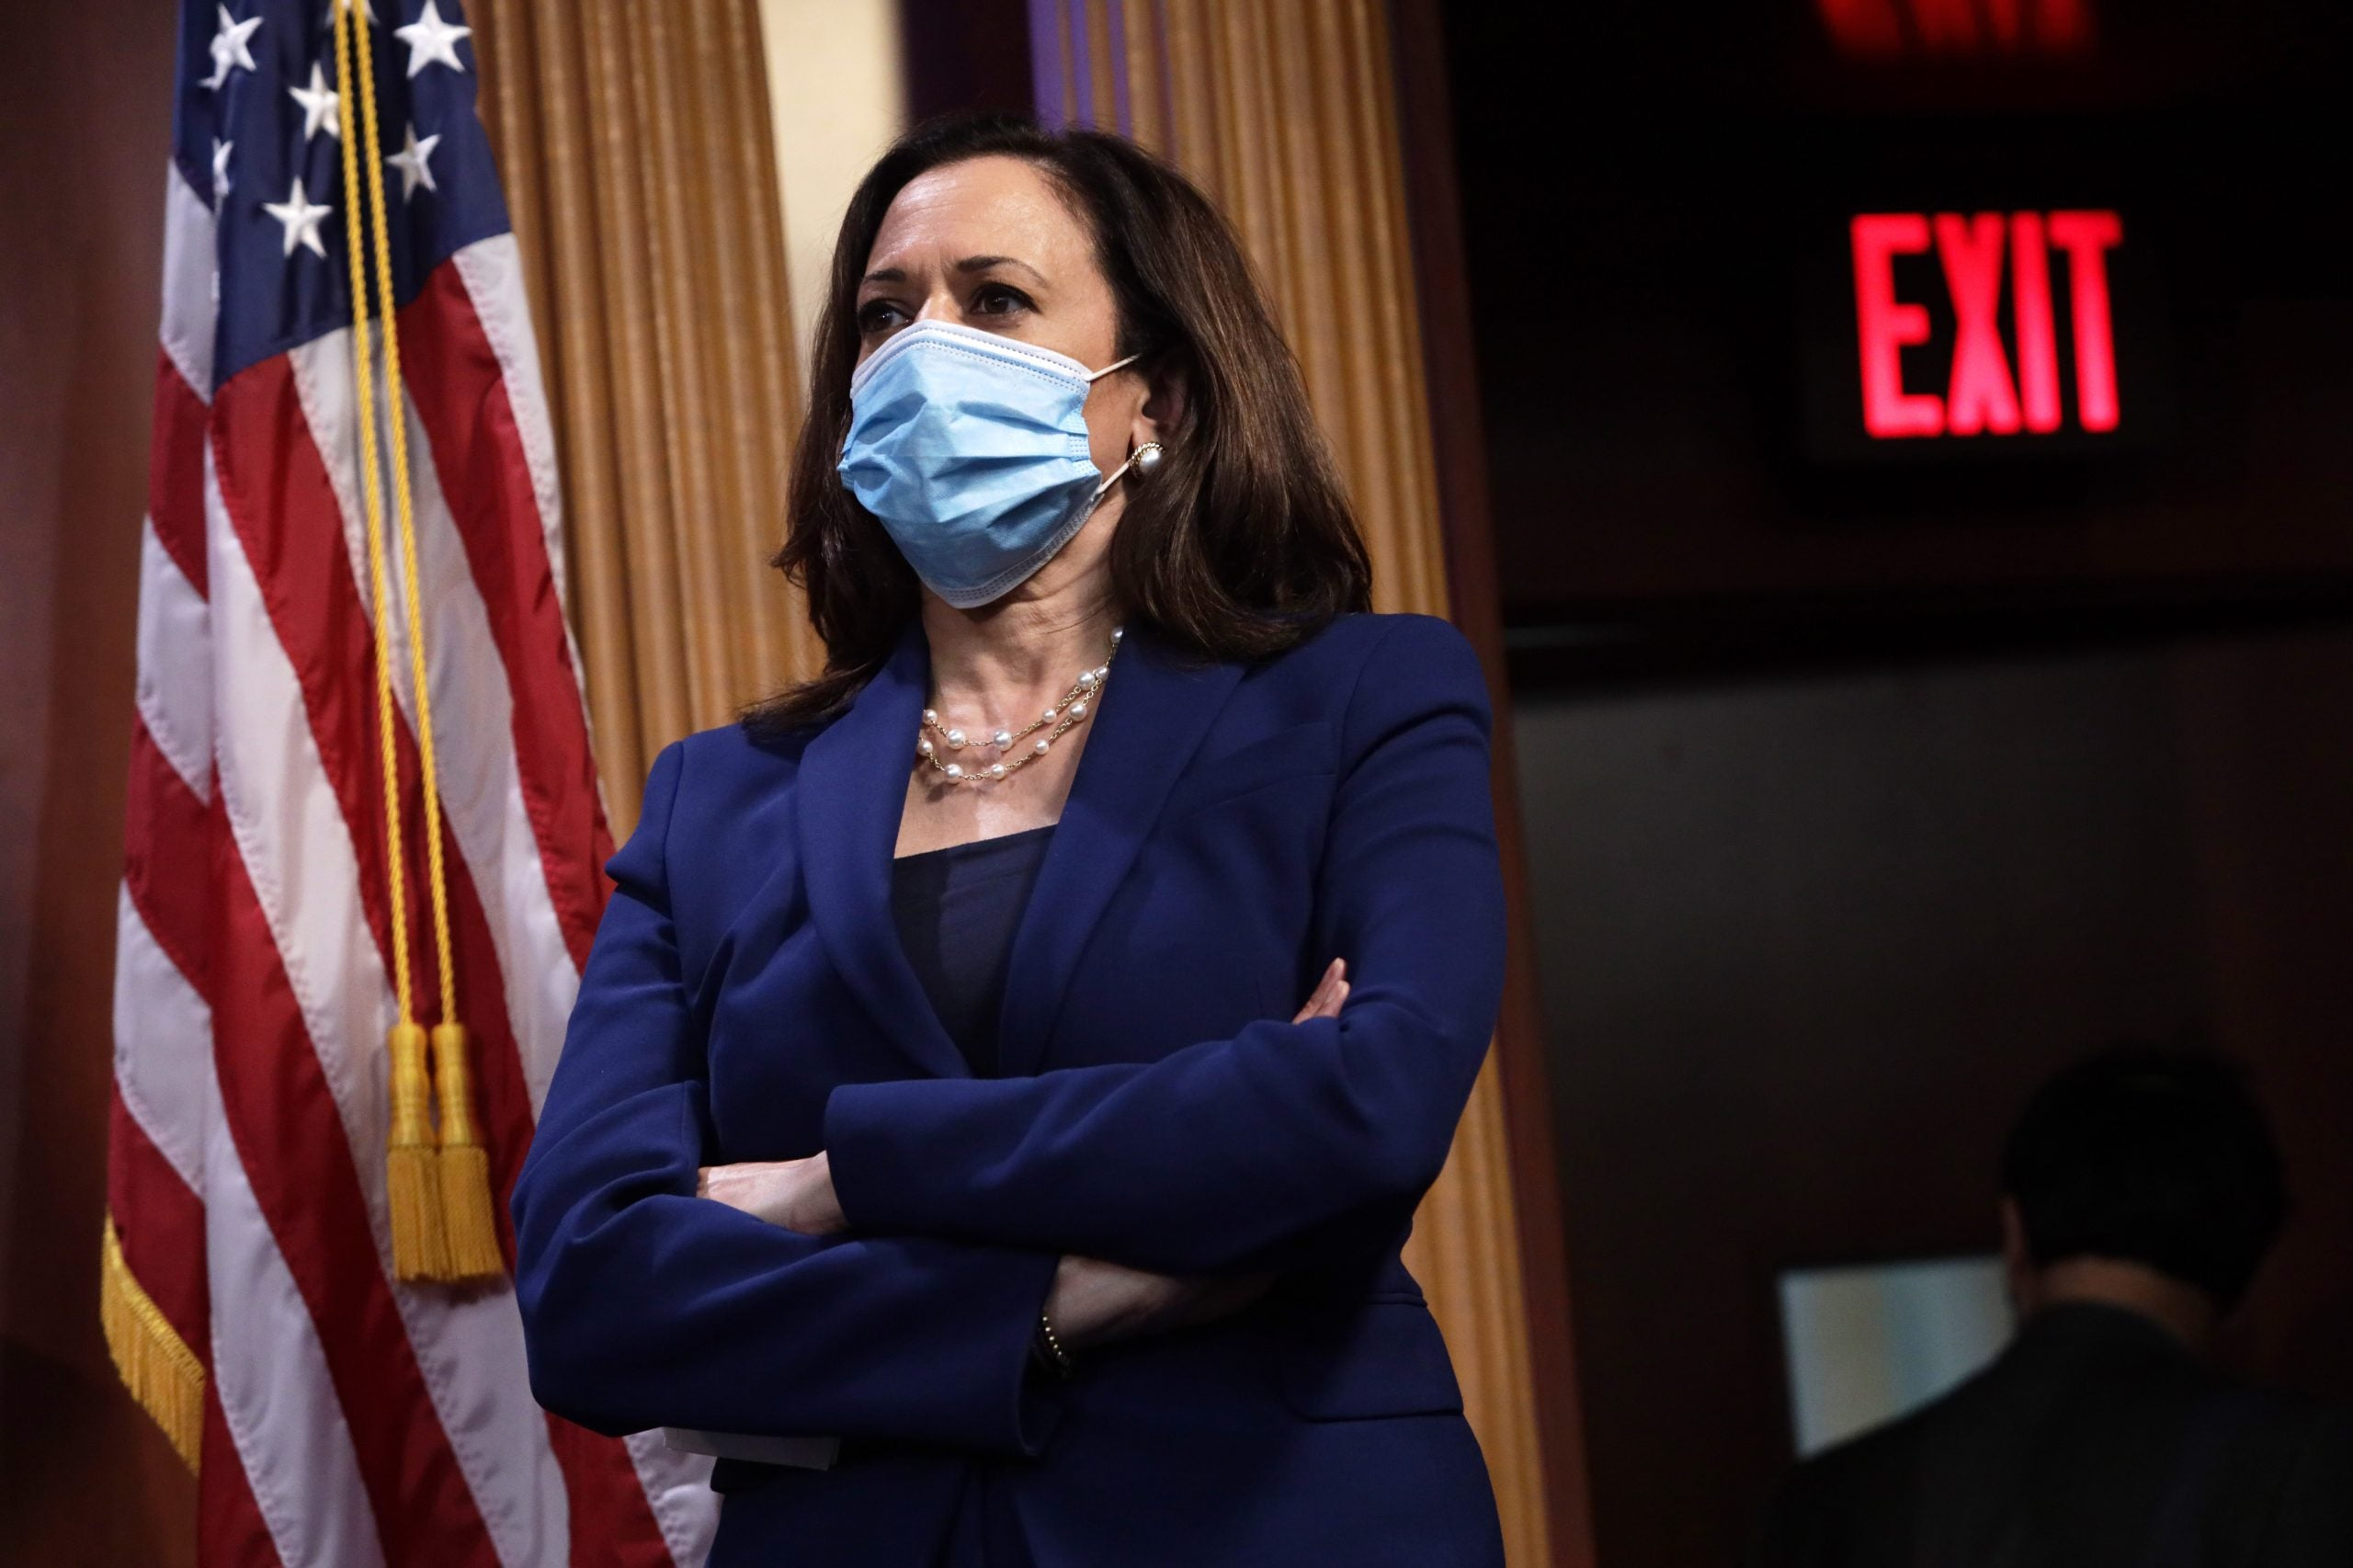 Kamala Harris stands with arms folded wearing a mask